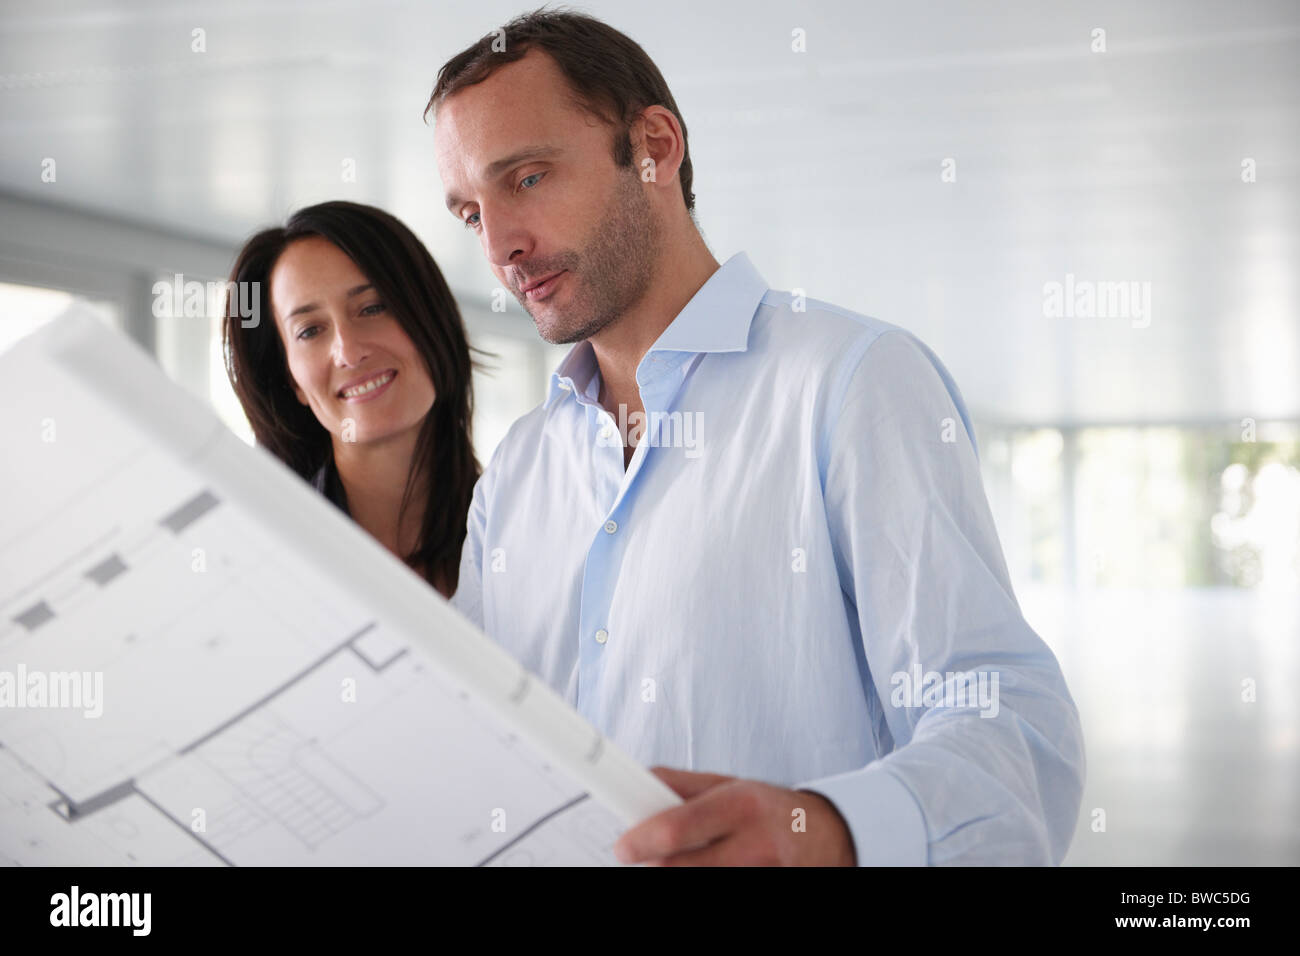 Architects looking at blue prints - Stock Image